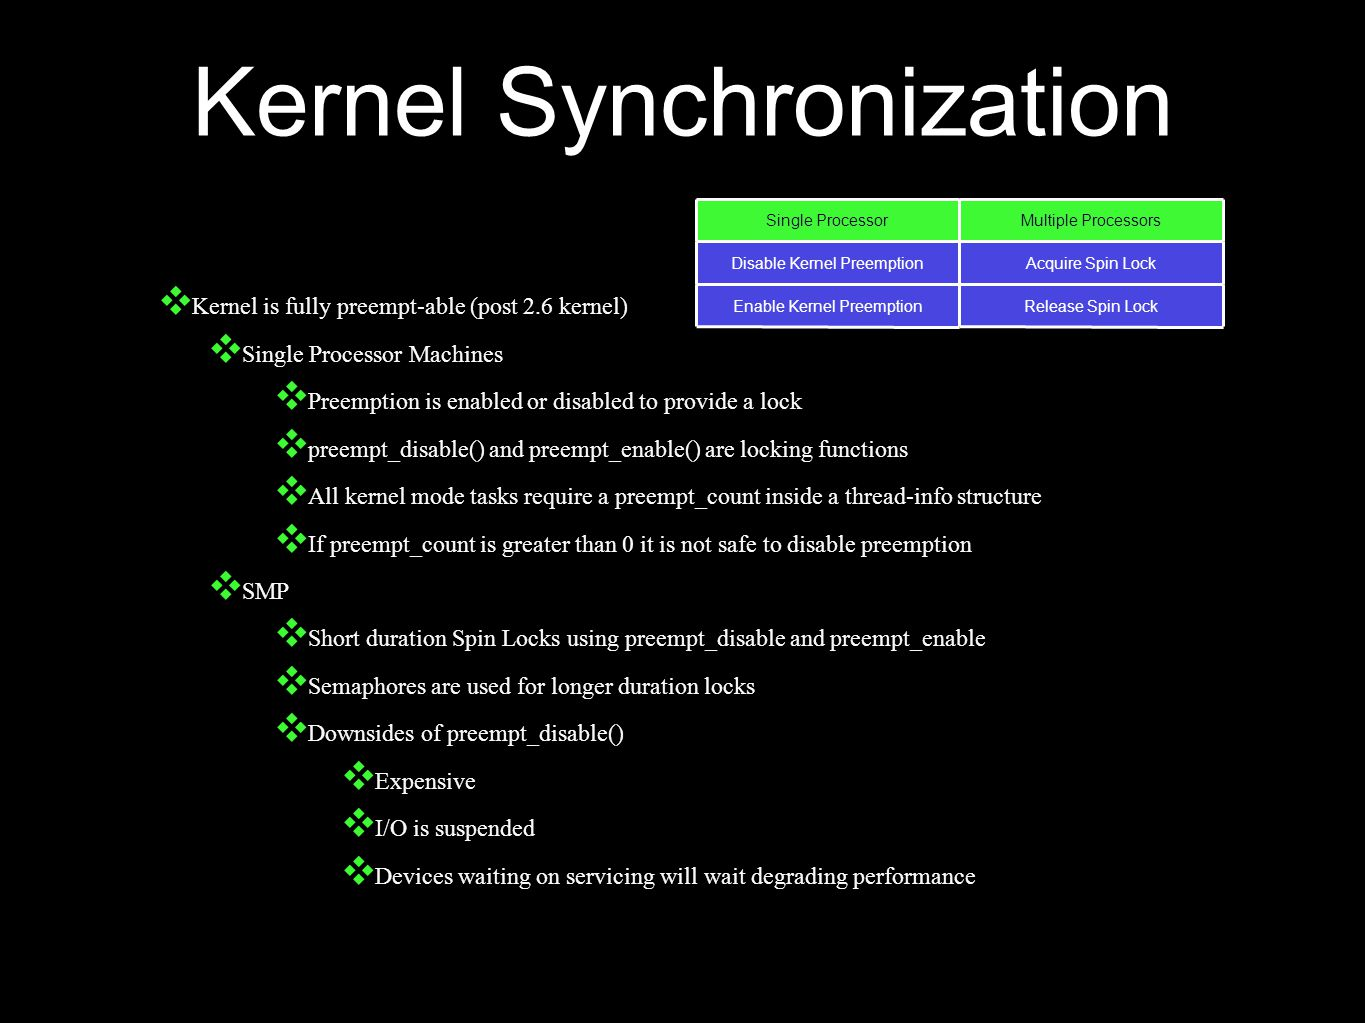 Kernel Synchronization ❖ Kernel is fully preempt-able (post 2.6 kernel) ❖ Single Processor Machines ❖ Preemption is enabled or disabled to provide a lock ❖ preempt_disable() and preempt_enable() are locking functions ❖ All kernel mode tasks require a preempt_count inside a thread-info structure ❖ If preempt_count is greater than 0 it is not safe to disable preemption ❖ SMP ❖ Short duration Spin Locks using preempt_disable and preempt_enable ❖ Semaphores are used for longer duration locks ❖ Downsides of preempt_disable() ❖ Expensive ❖ I/O is suspended ❖ Devices waiting on servicing will wait degrading performance Single ProcessorMultiple Processors Disable Kernel PreemptionAcquire Spin Lock Enable Kernel PreemptionRelease Spin Lock